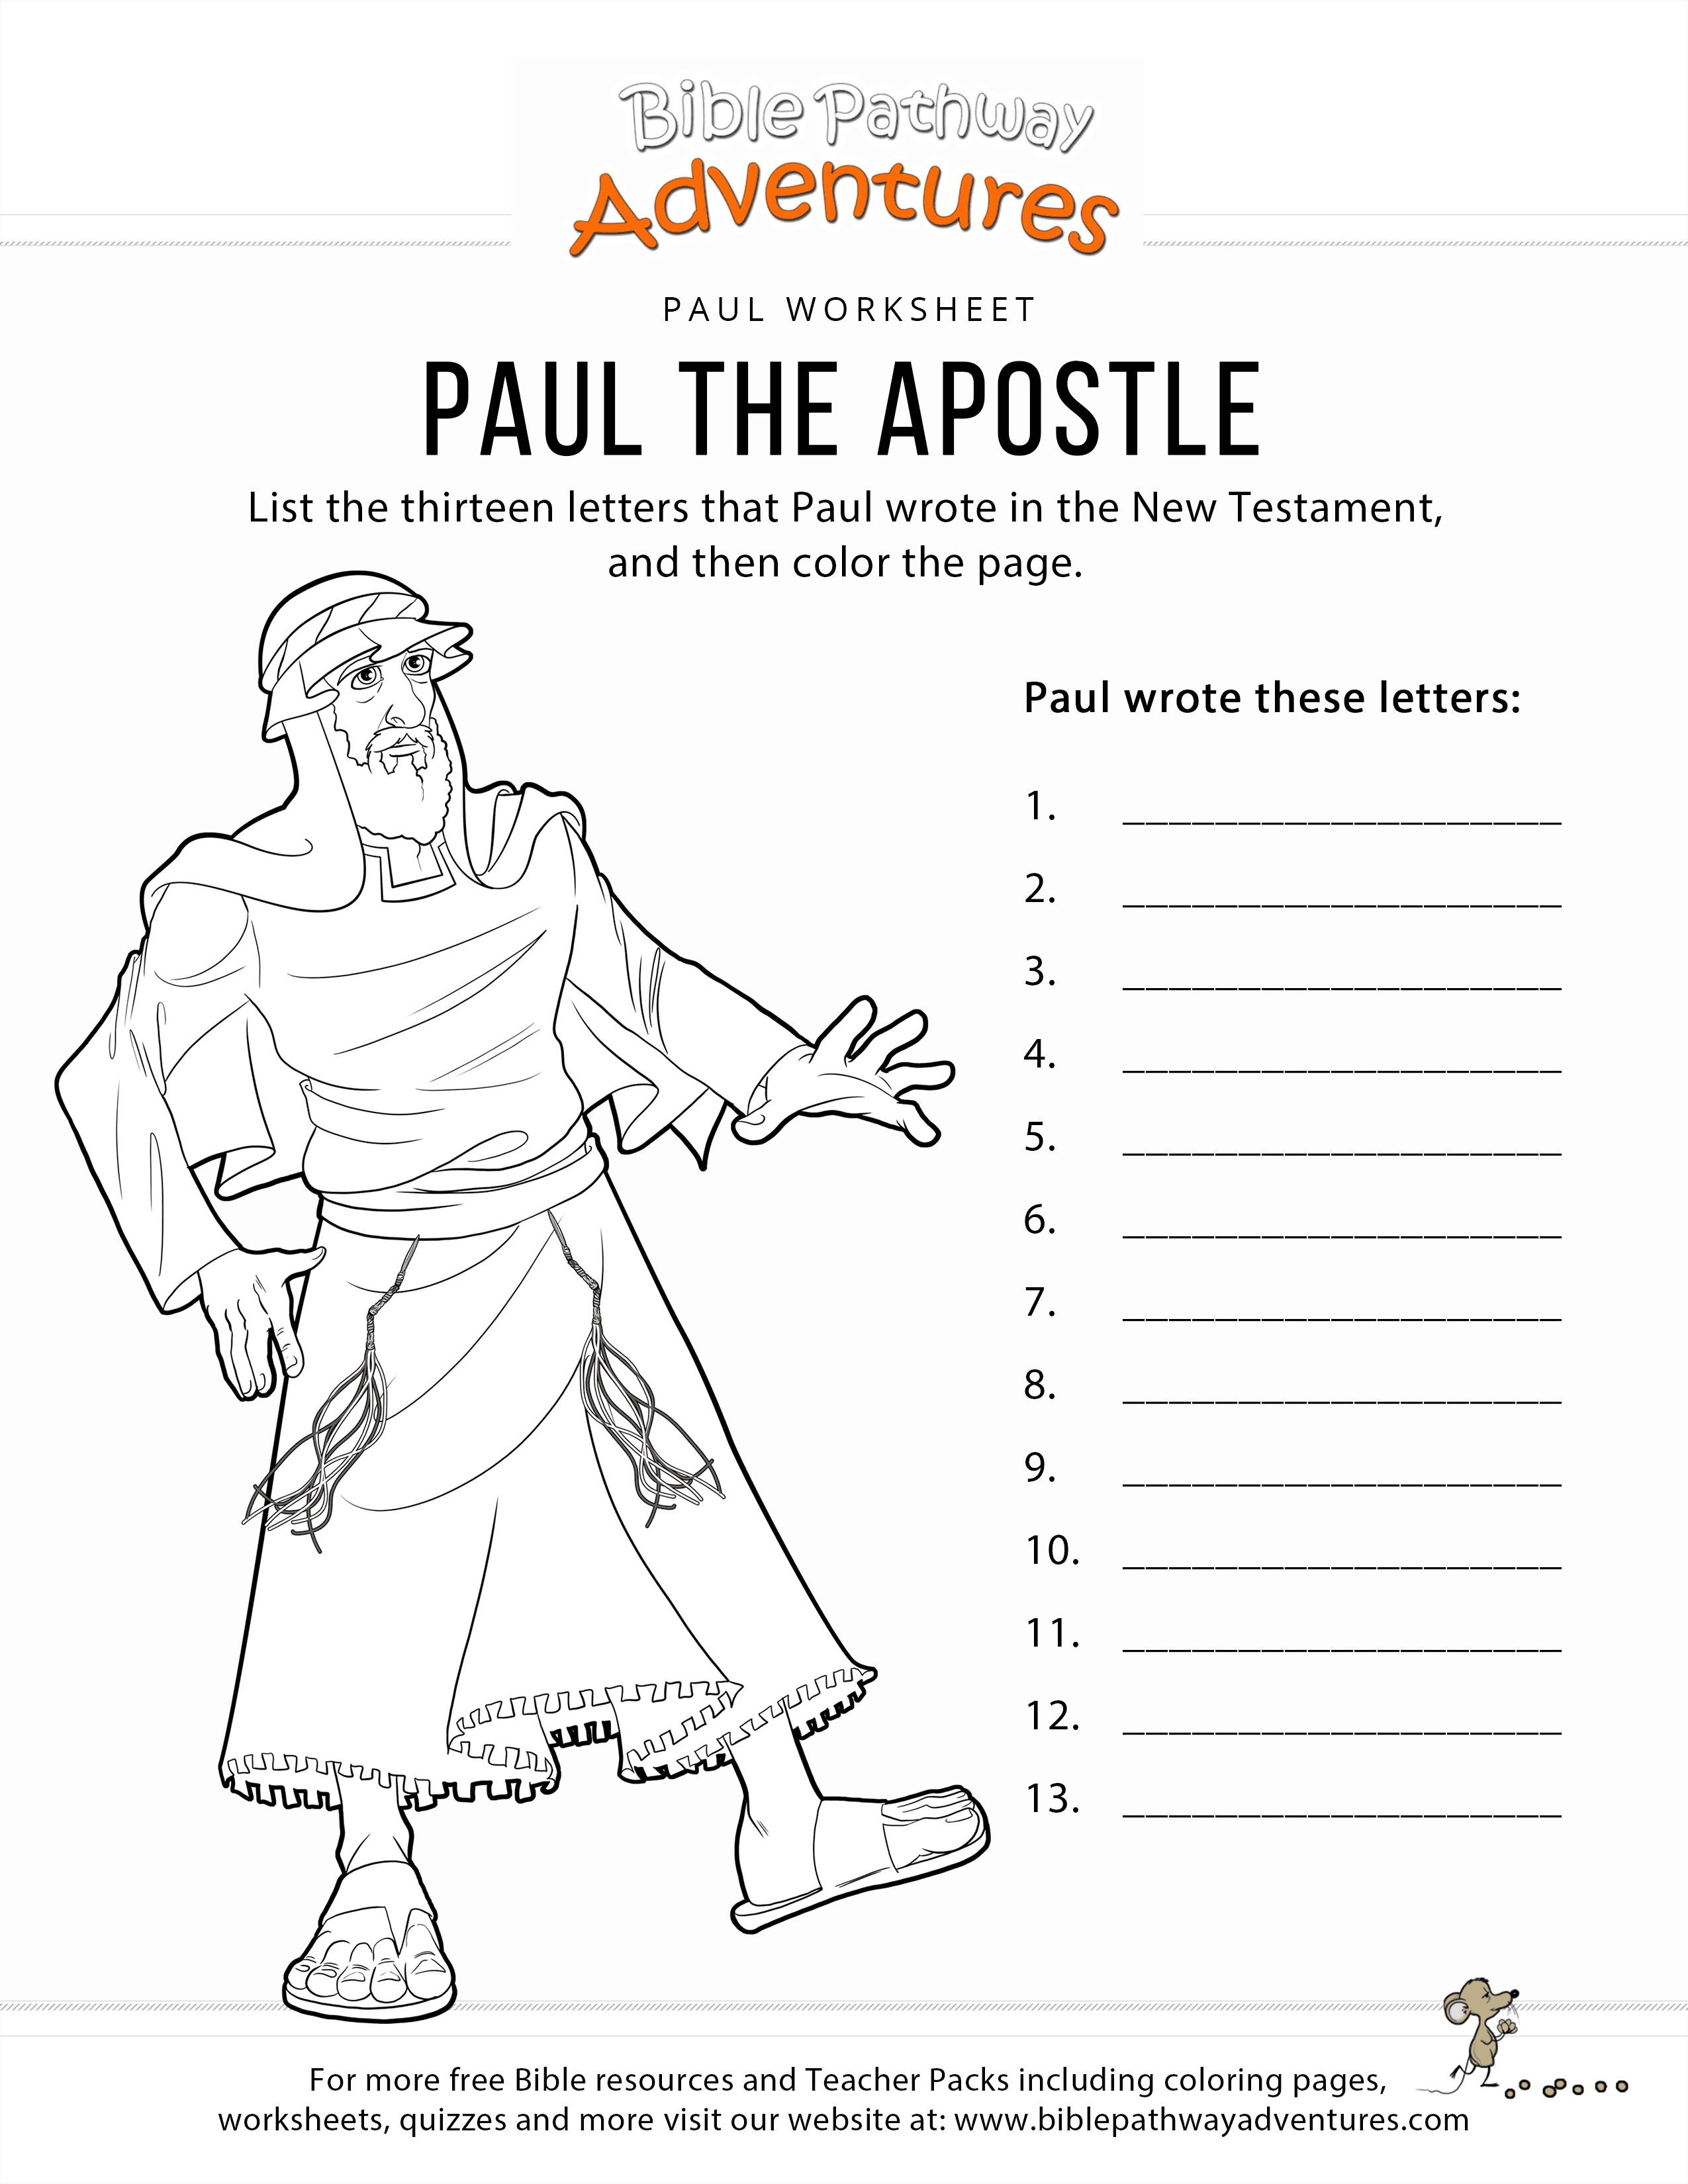 Paul The Apostle Worksheet Amp Coloring Page Bible Pathway Adventures